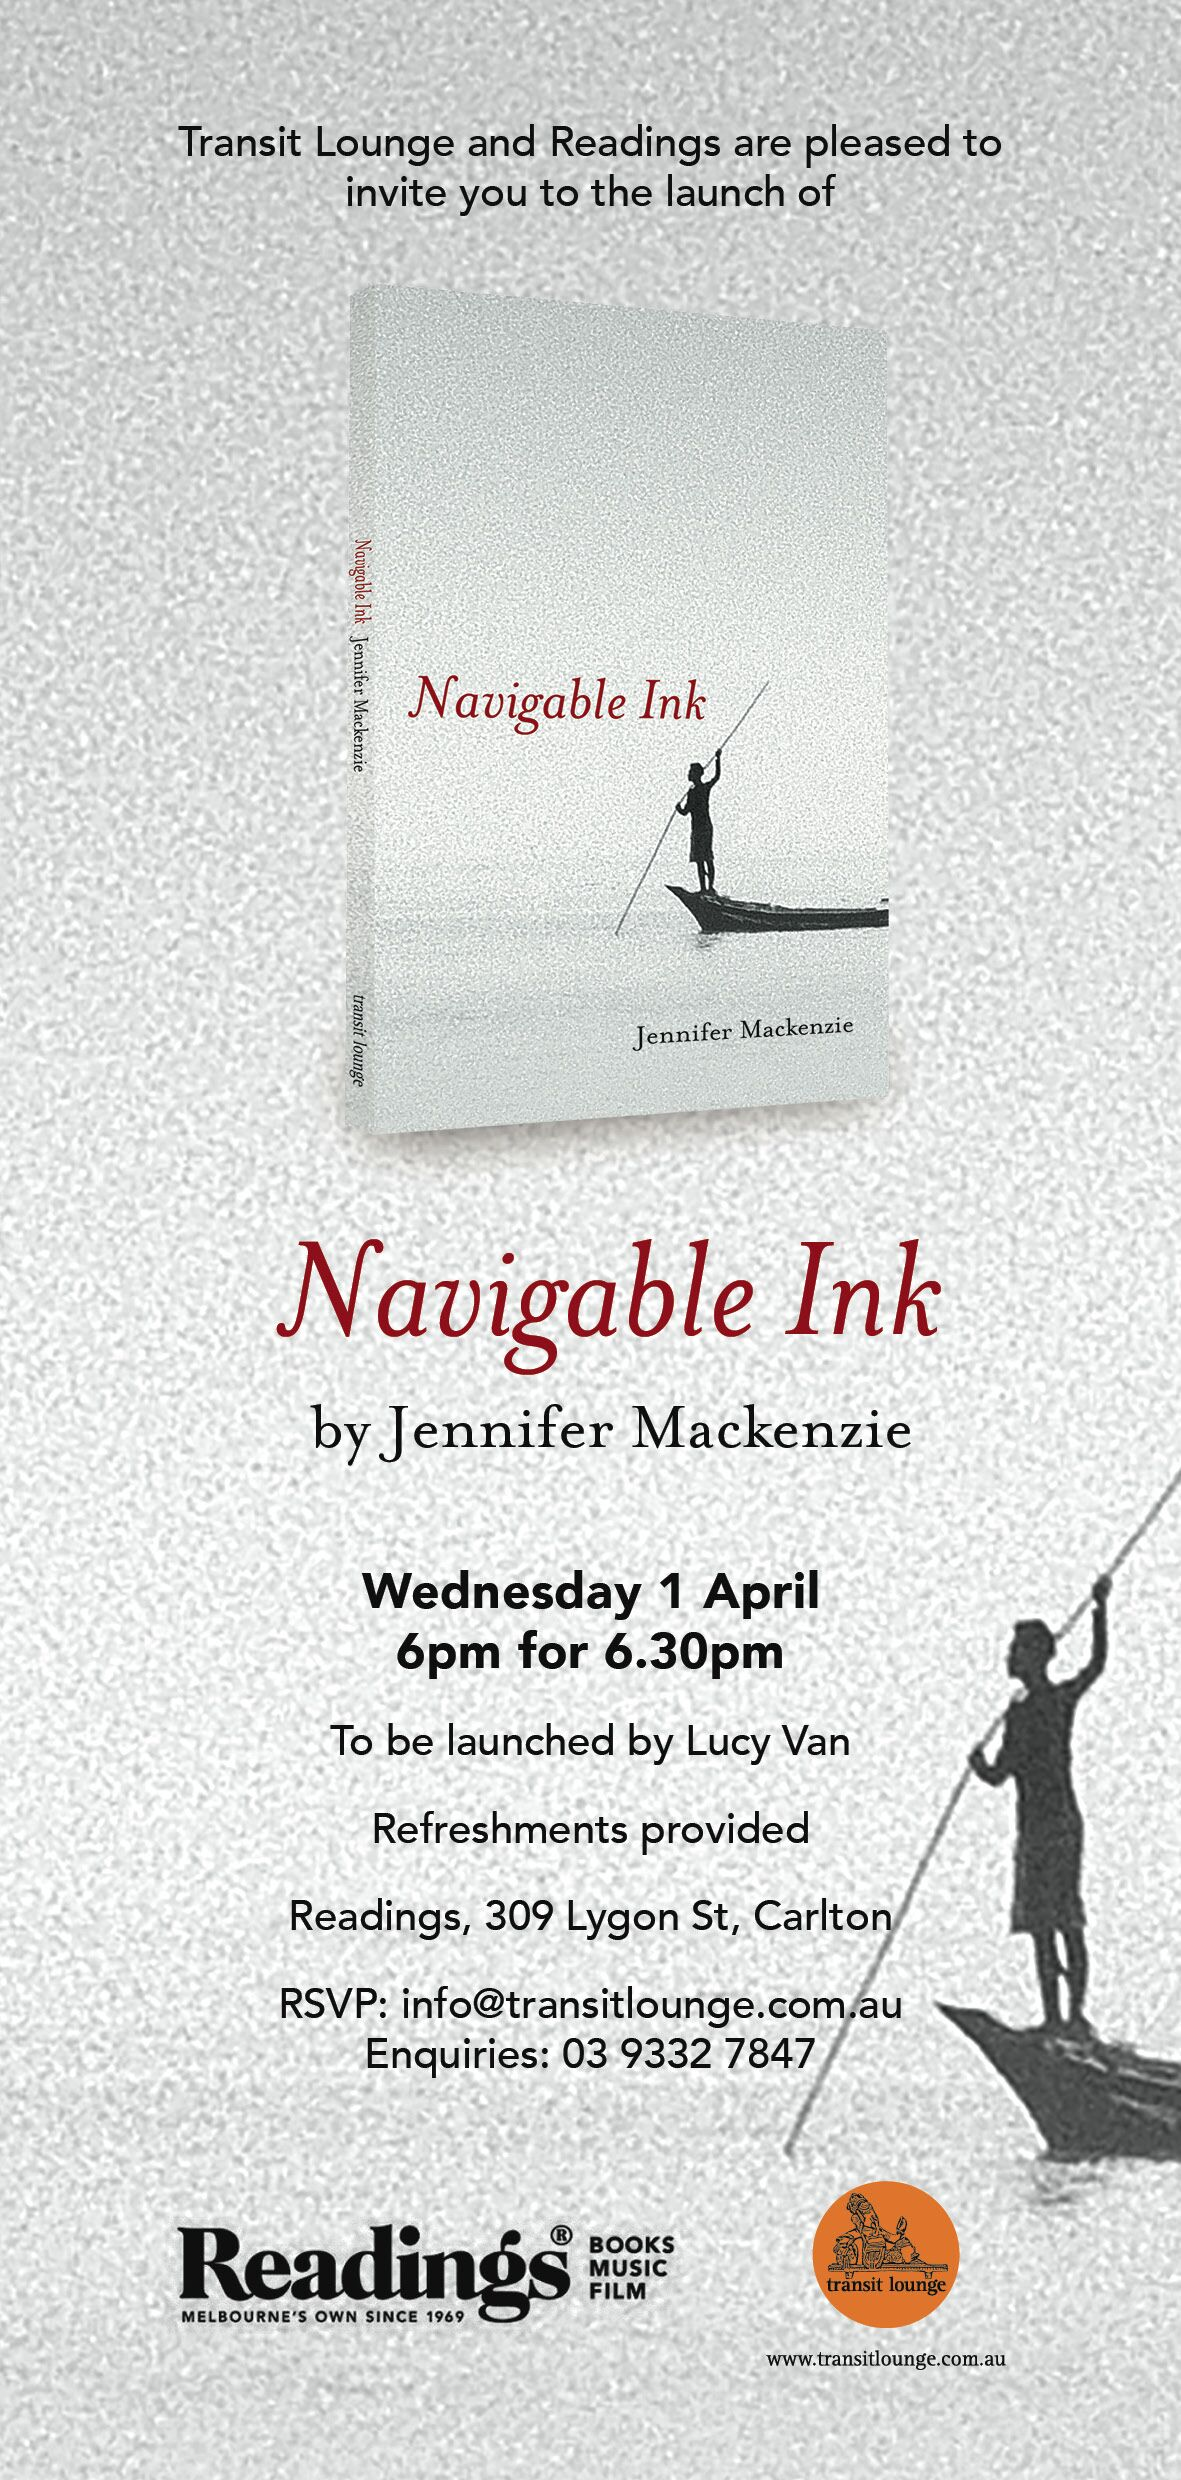 Launch of Navigable Ink by Jennifer Mackenzie POSTPONED  for now